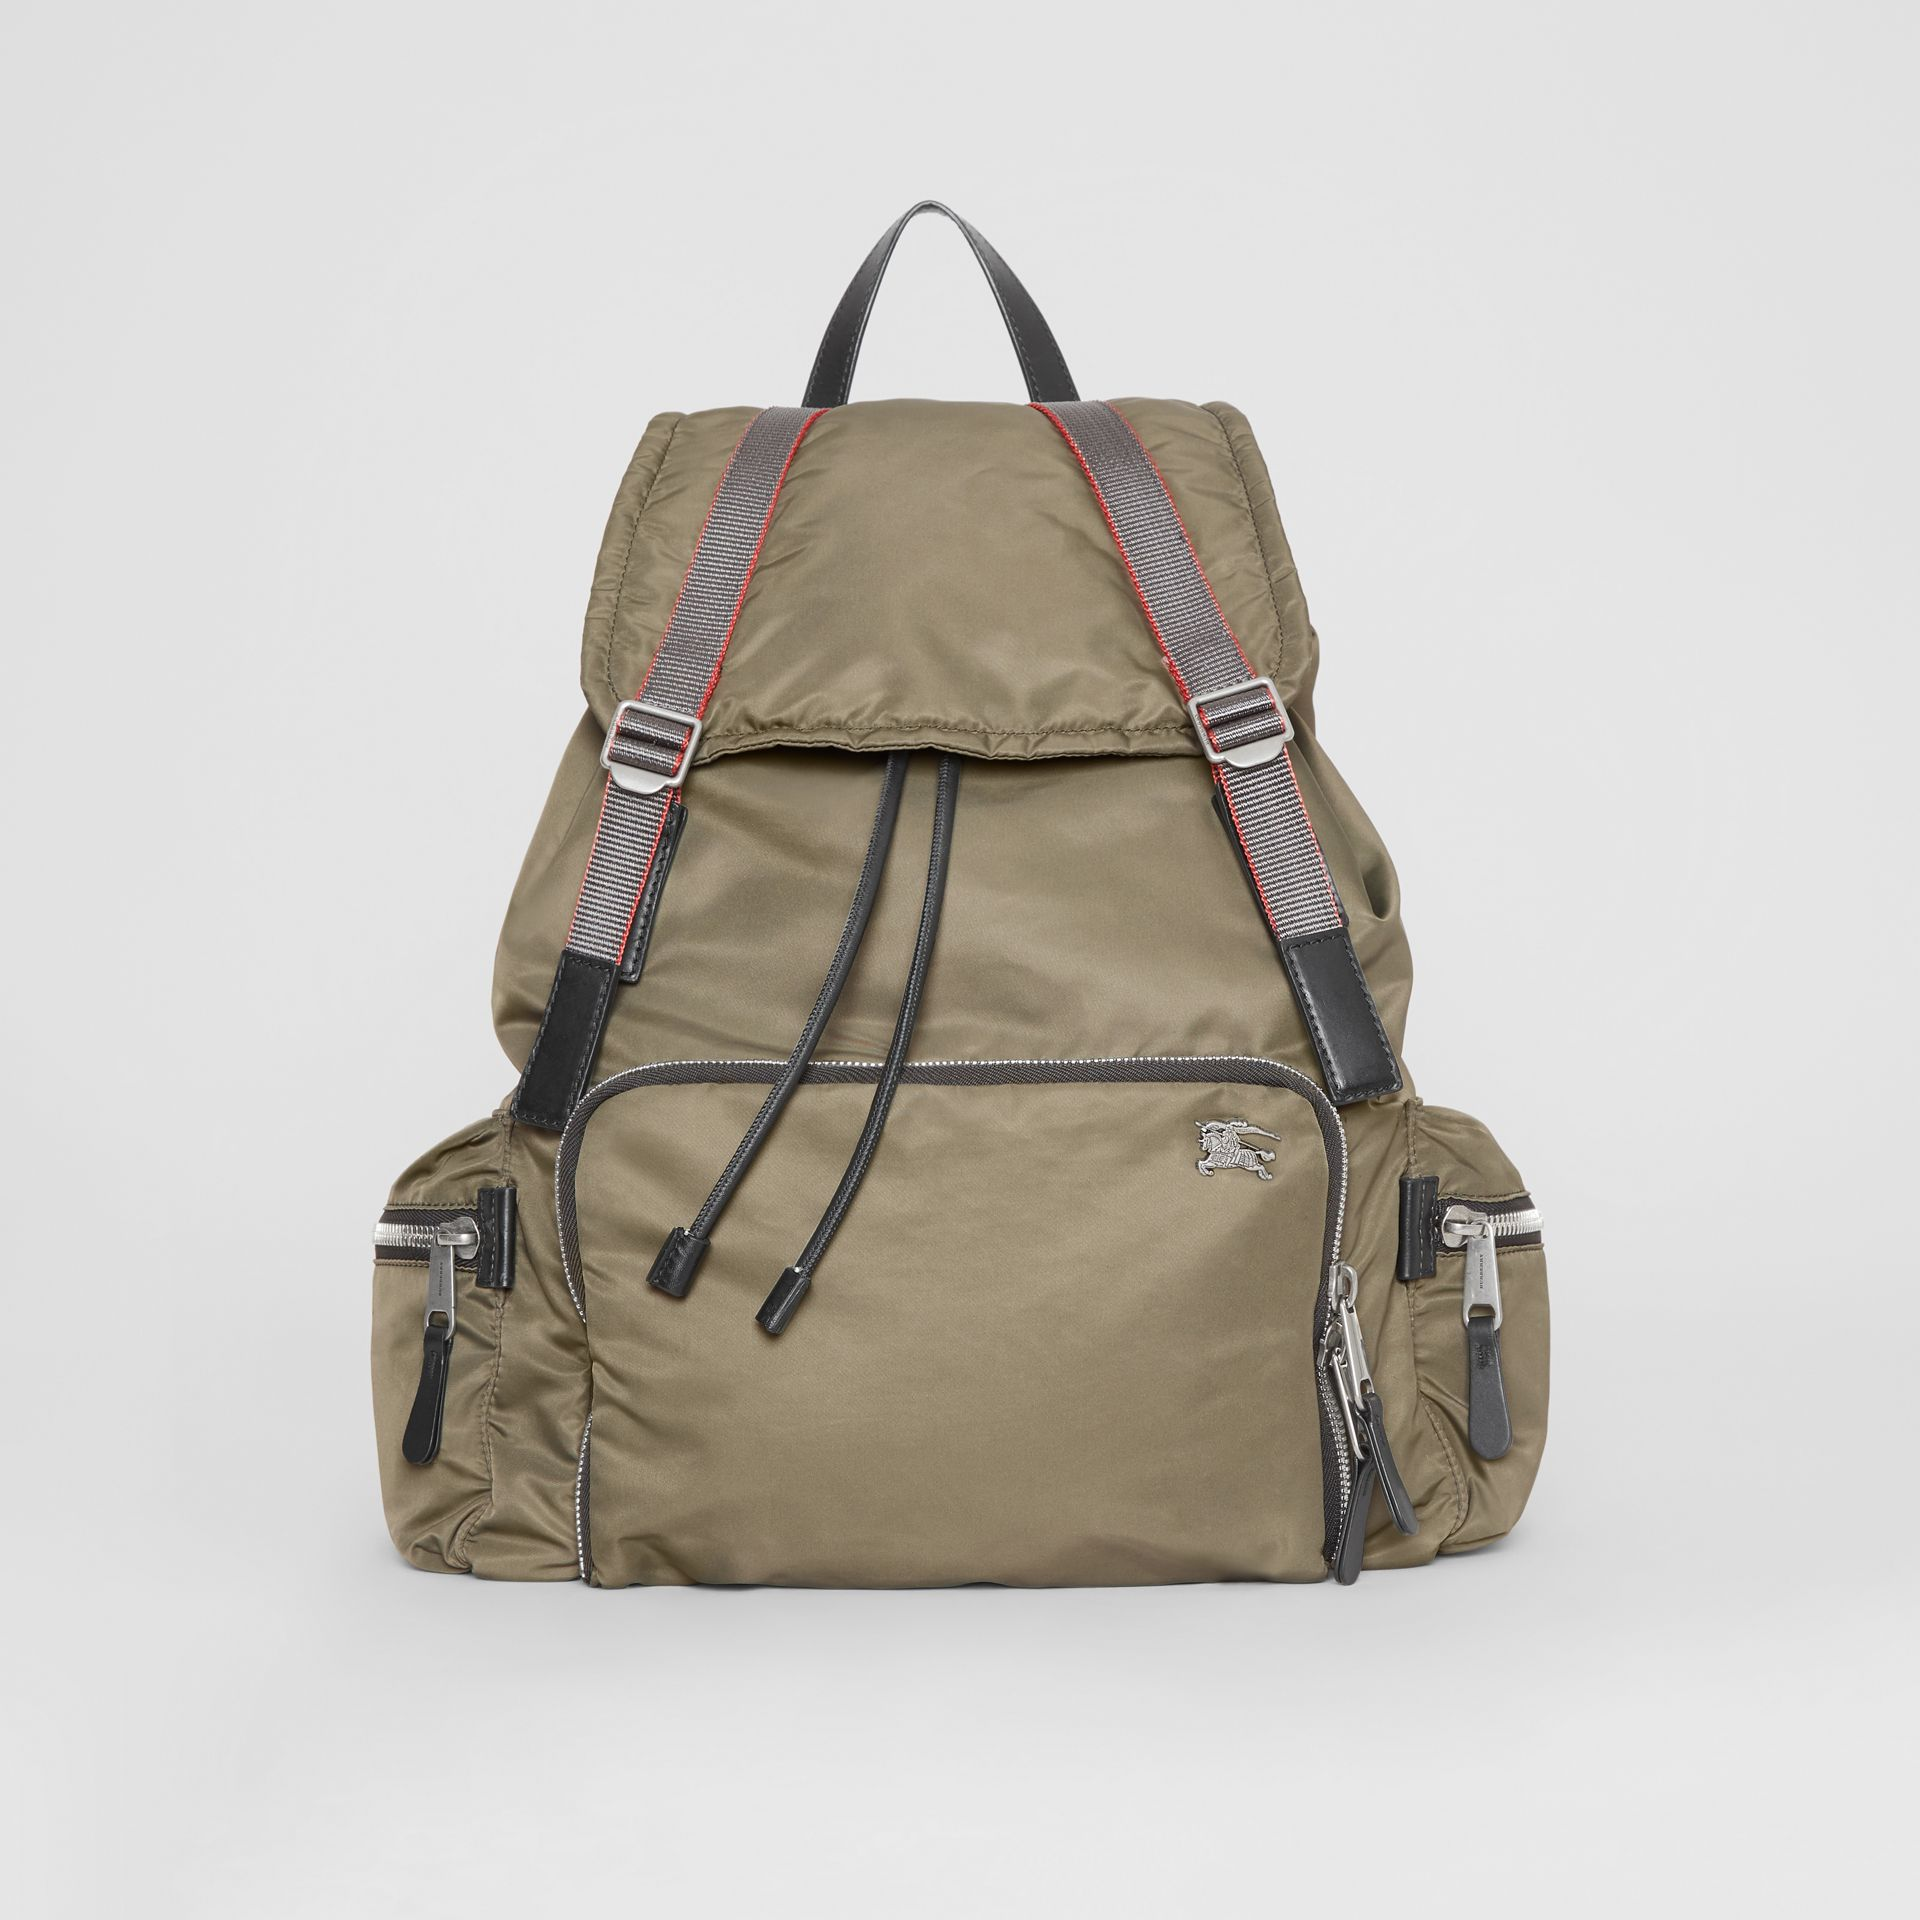 Sac The Rucksack extra-large en nylon façon aviateur (Céladon) - Homme | Burberry - photo de la galerie 0